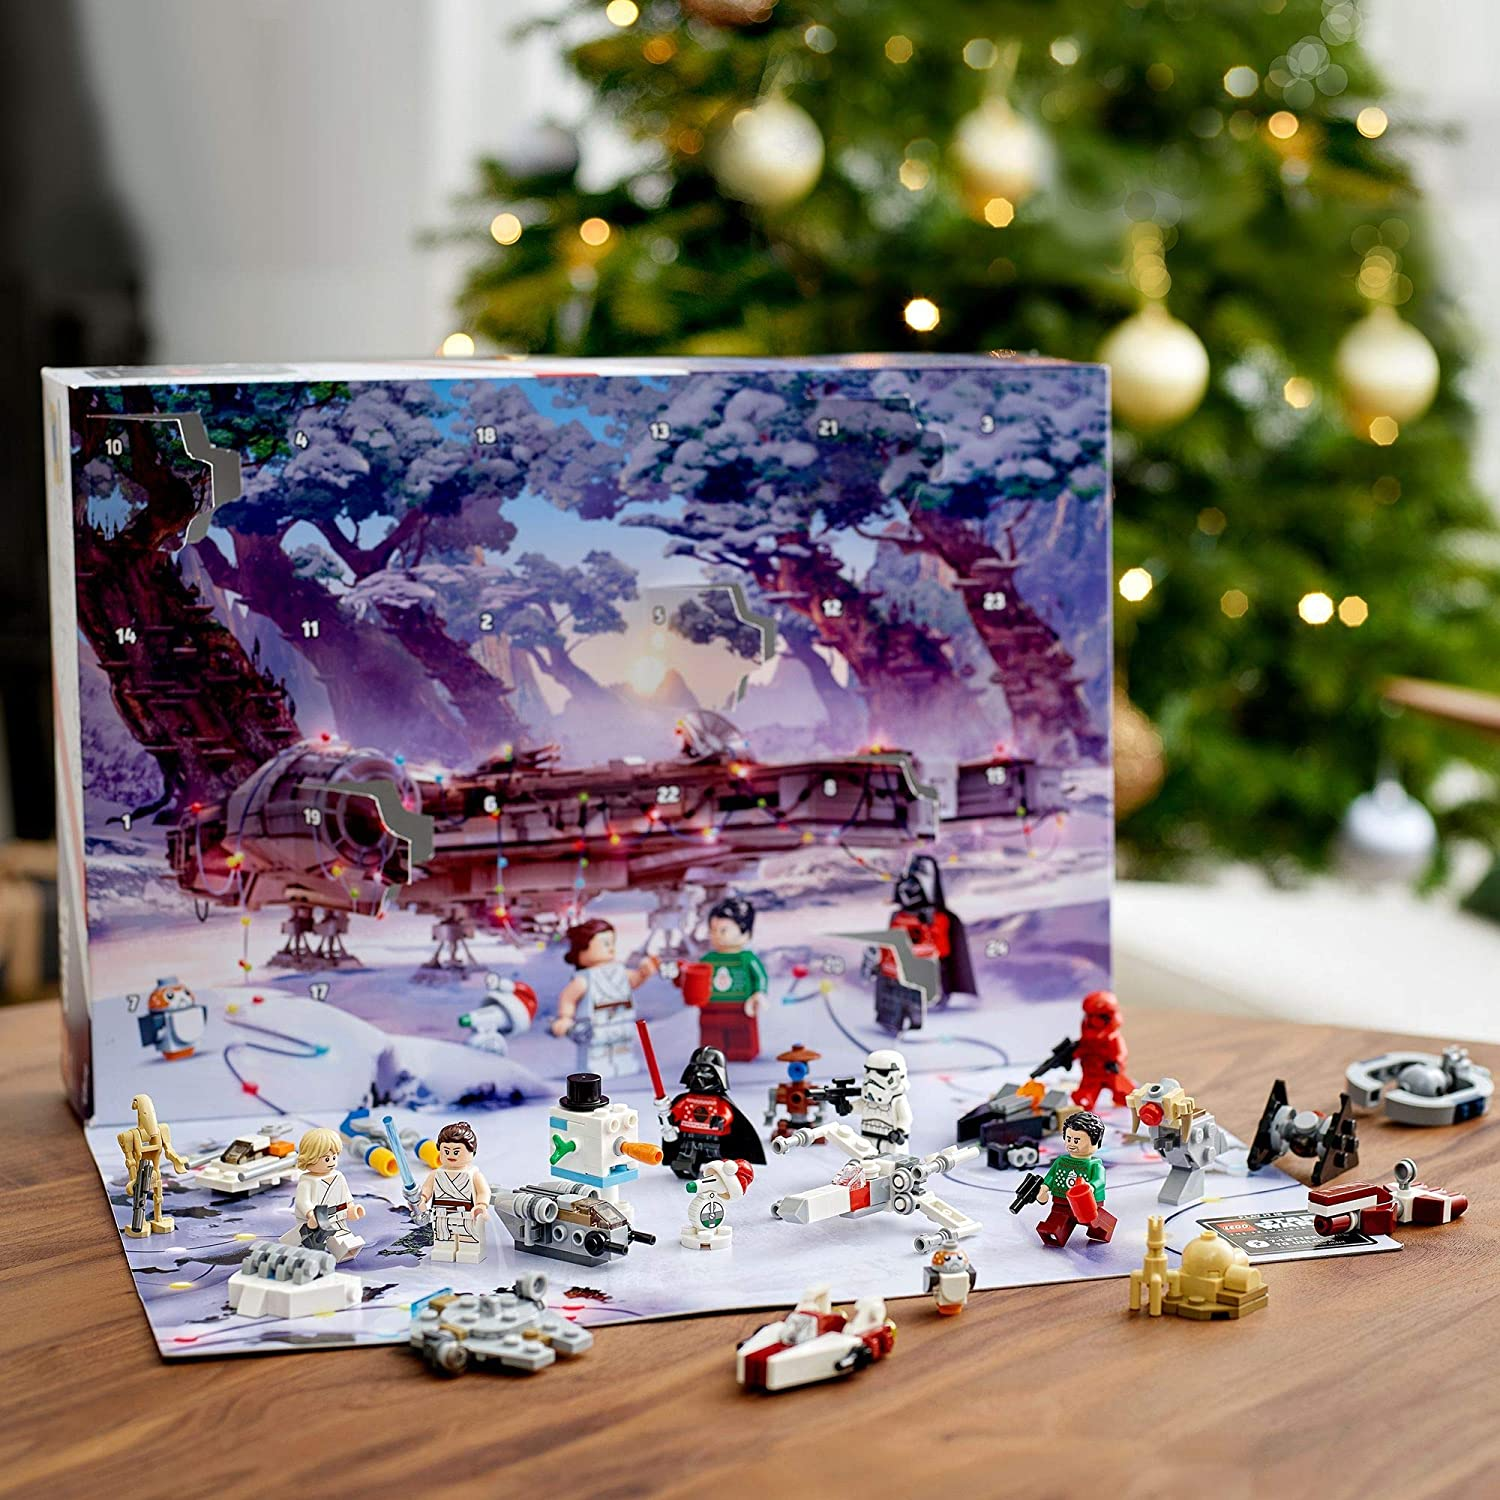 LEGO Star Wars Calendrier de l'Avent LEGO Star Wars 2020 mini jeu de Construction de Noël